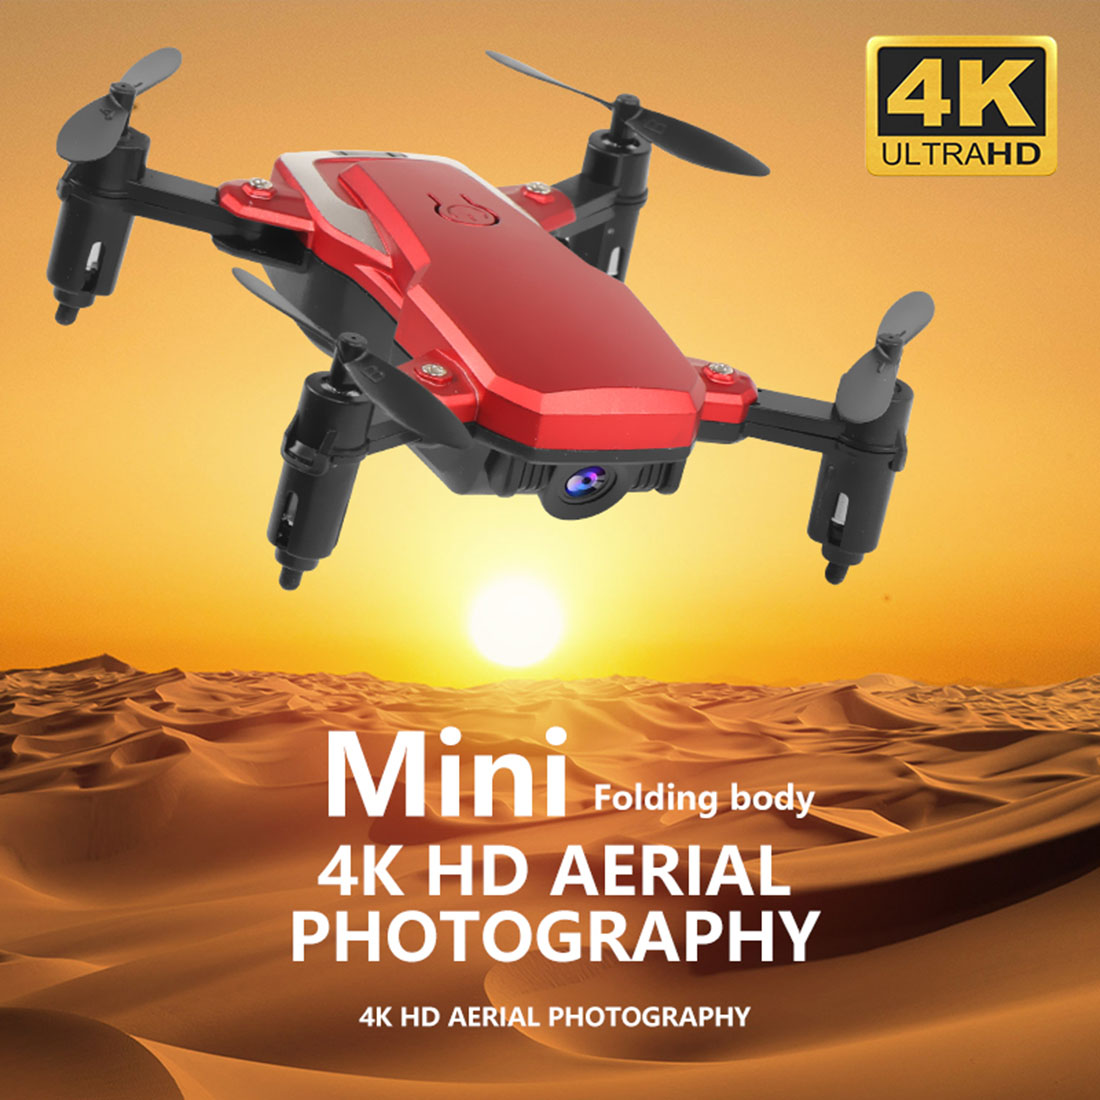 Foldable Mini Drone K1 WiFi FPV HD Camera 0.3MP 2.0MP 5.0MP 4K Altitude Hold Aerial Video 3D Flips RC Quadcopter Kids Toy